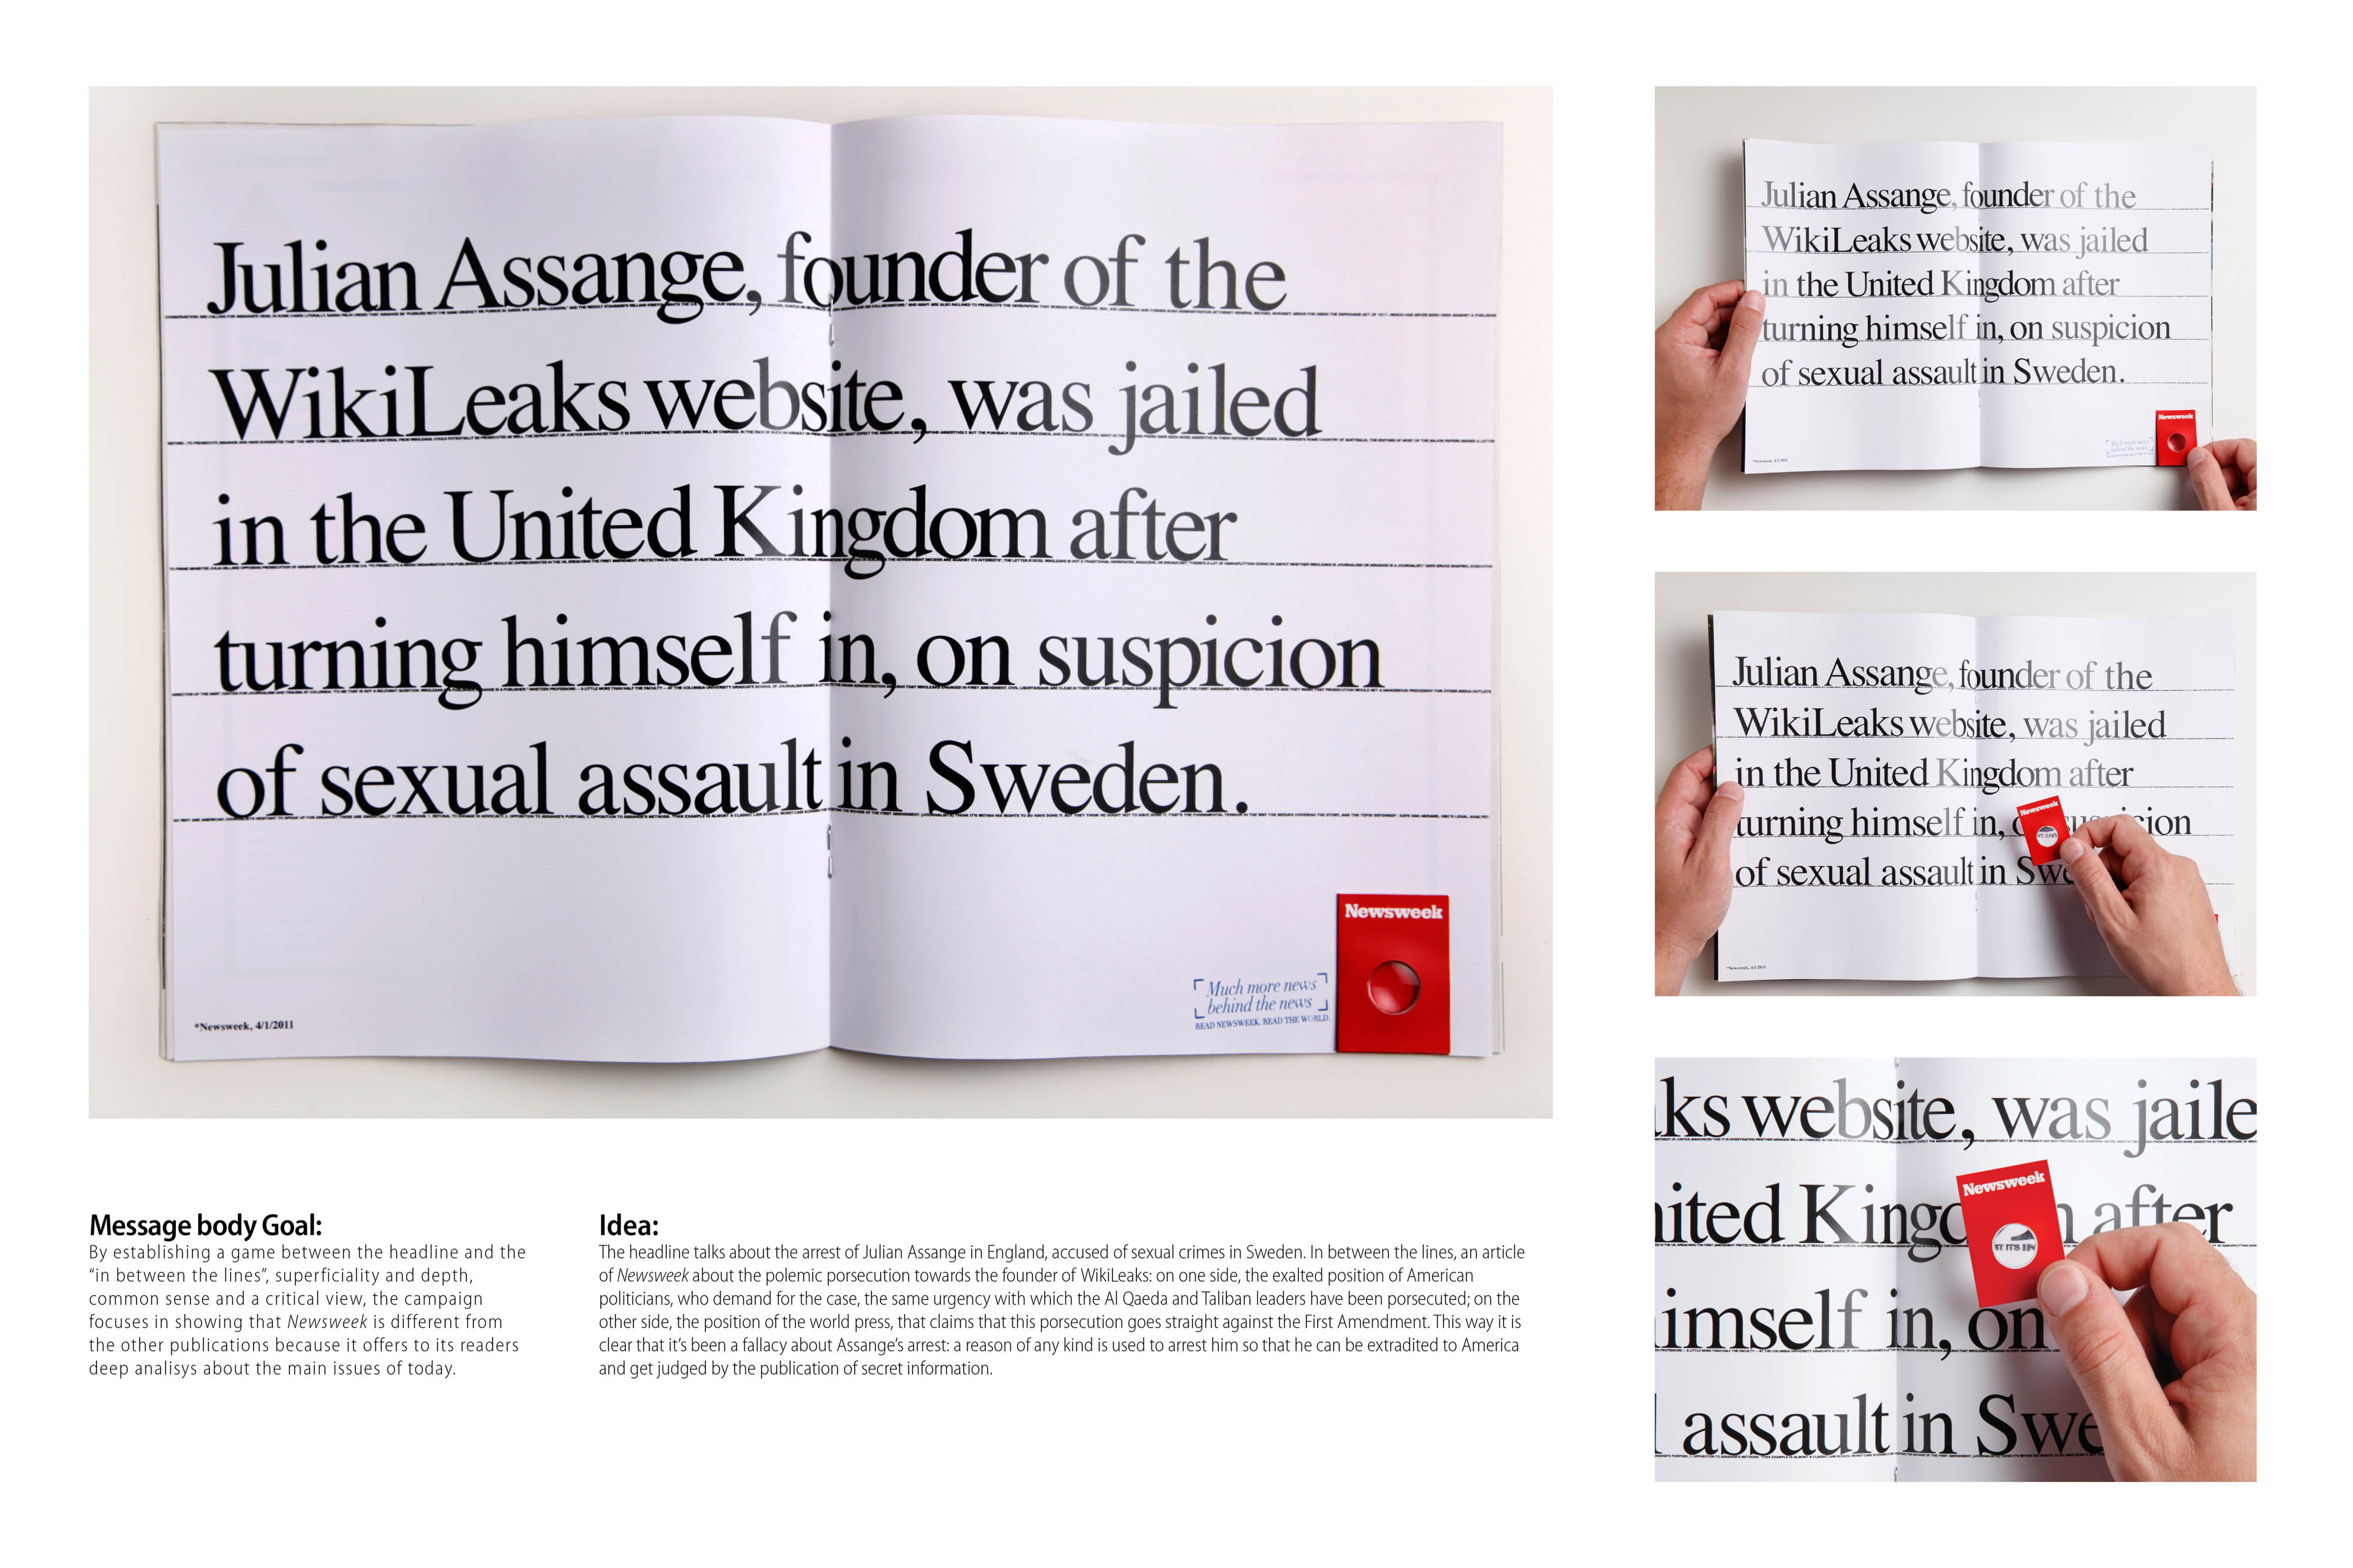 http://www.ibelieveinadv.com/commons2/Assange-Ad-Explanation.jpg